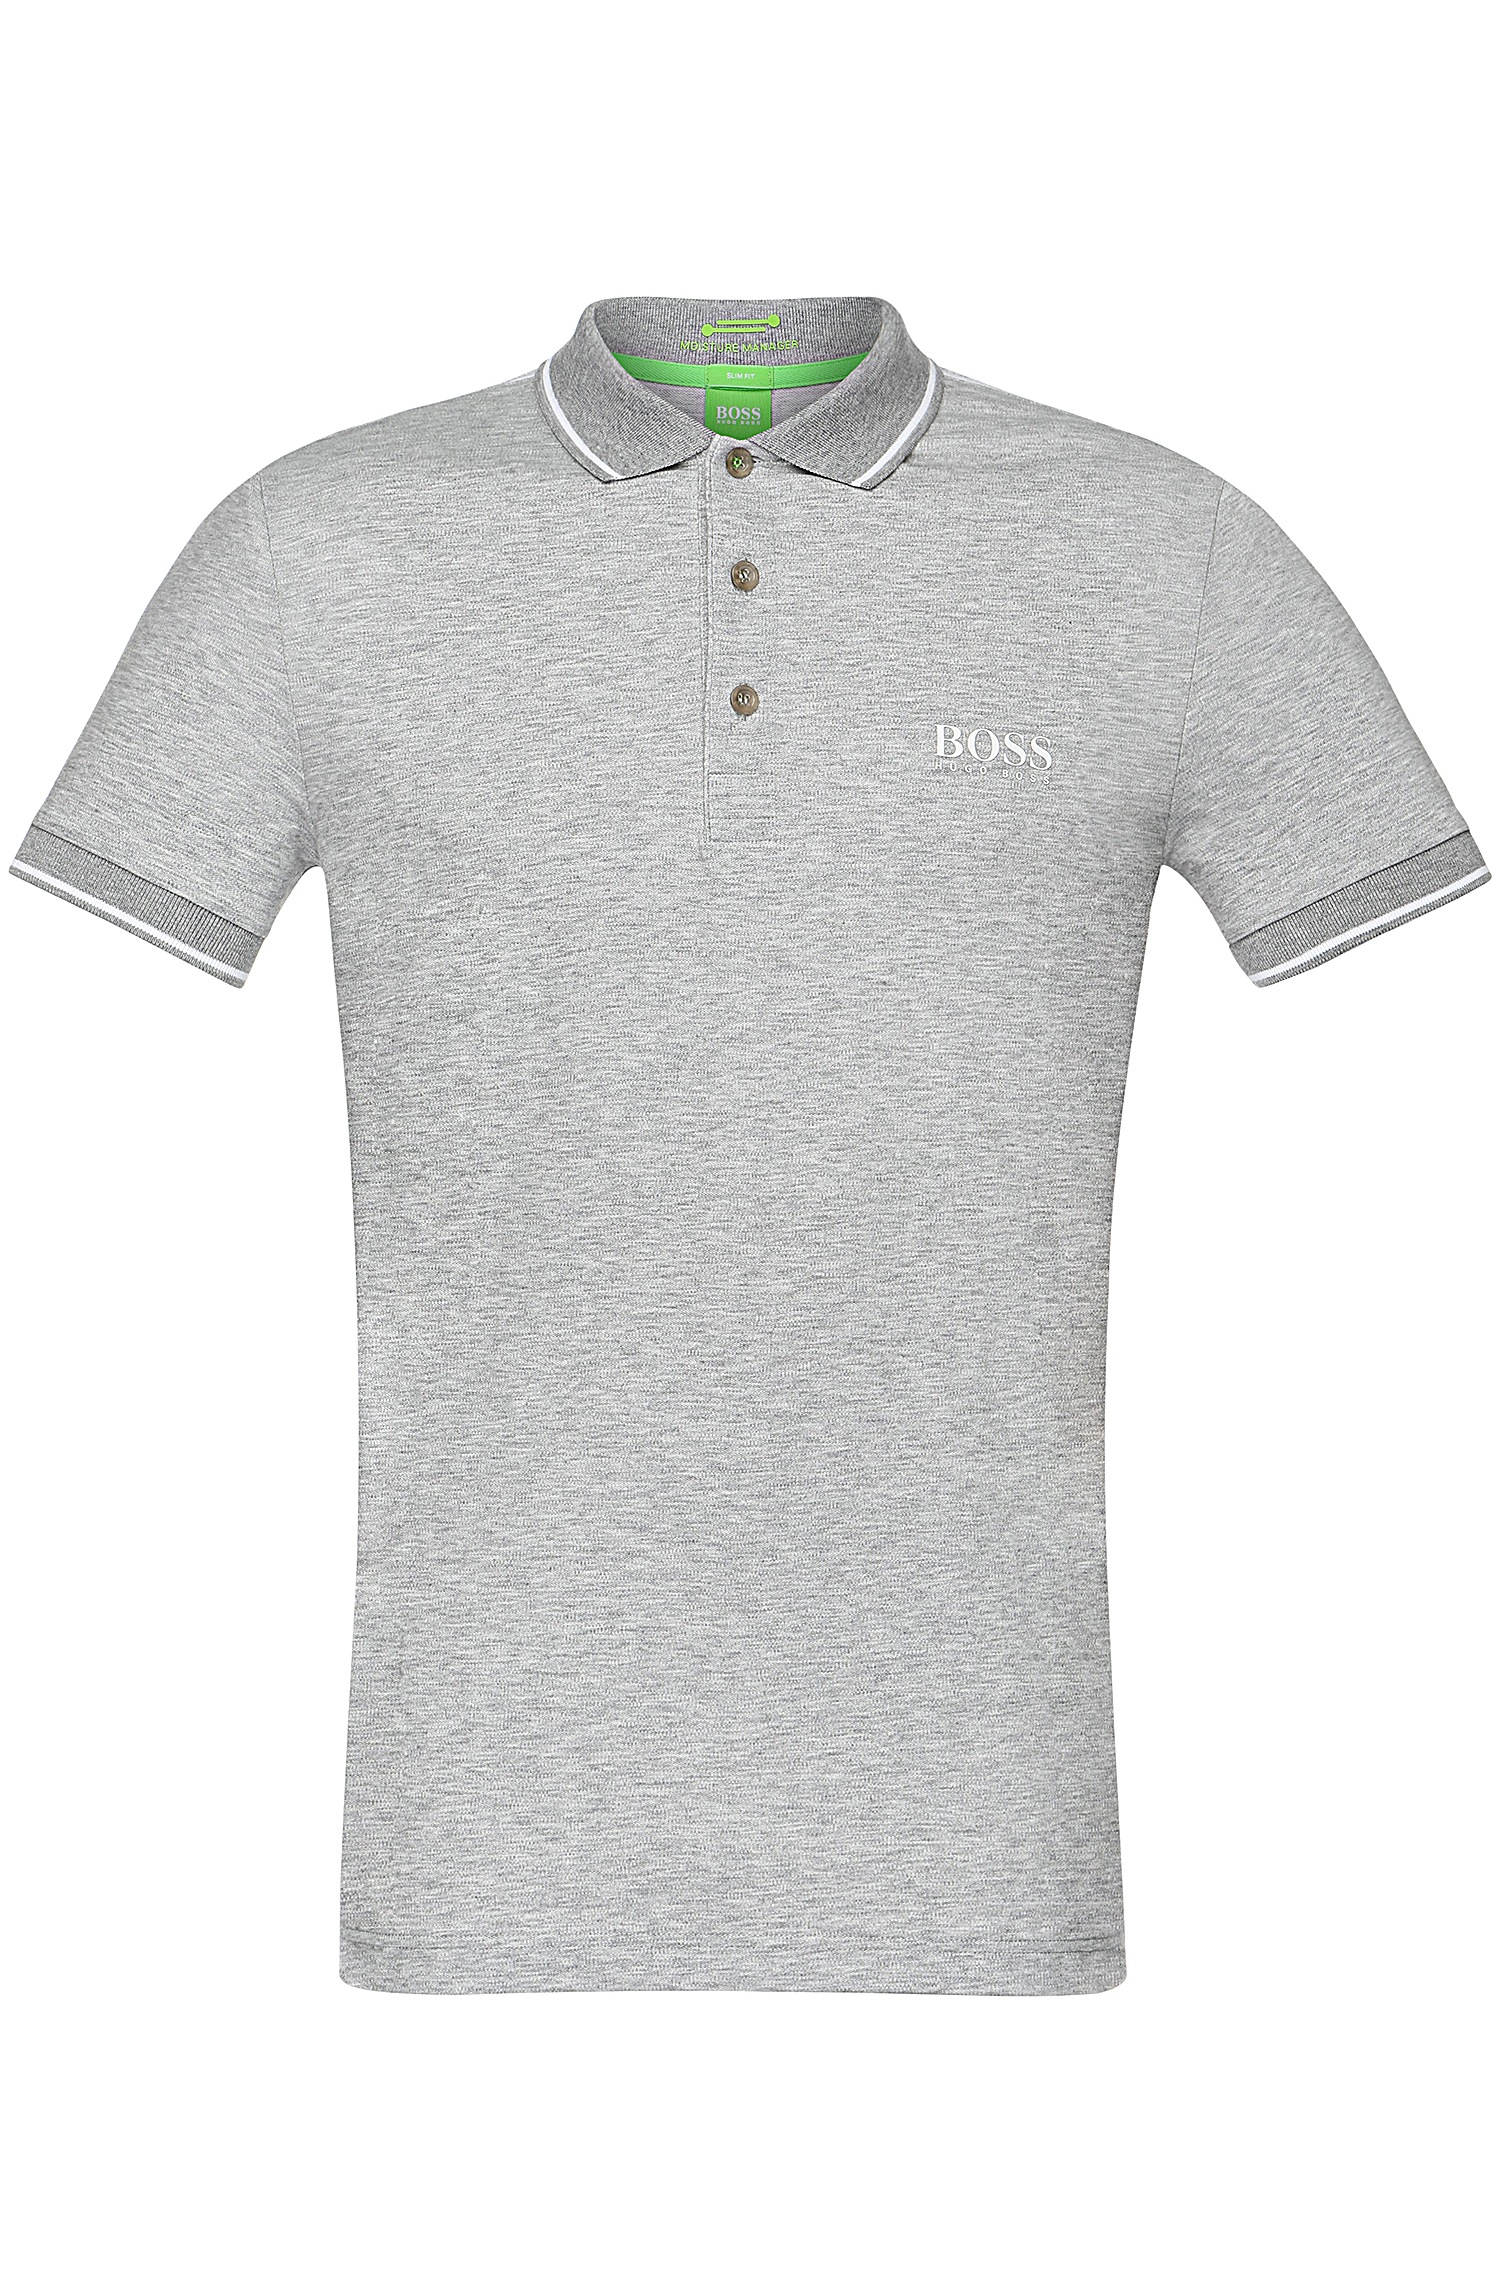 Boss Green Slim Fit Polo Shirt In Functional Fabric